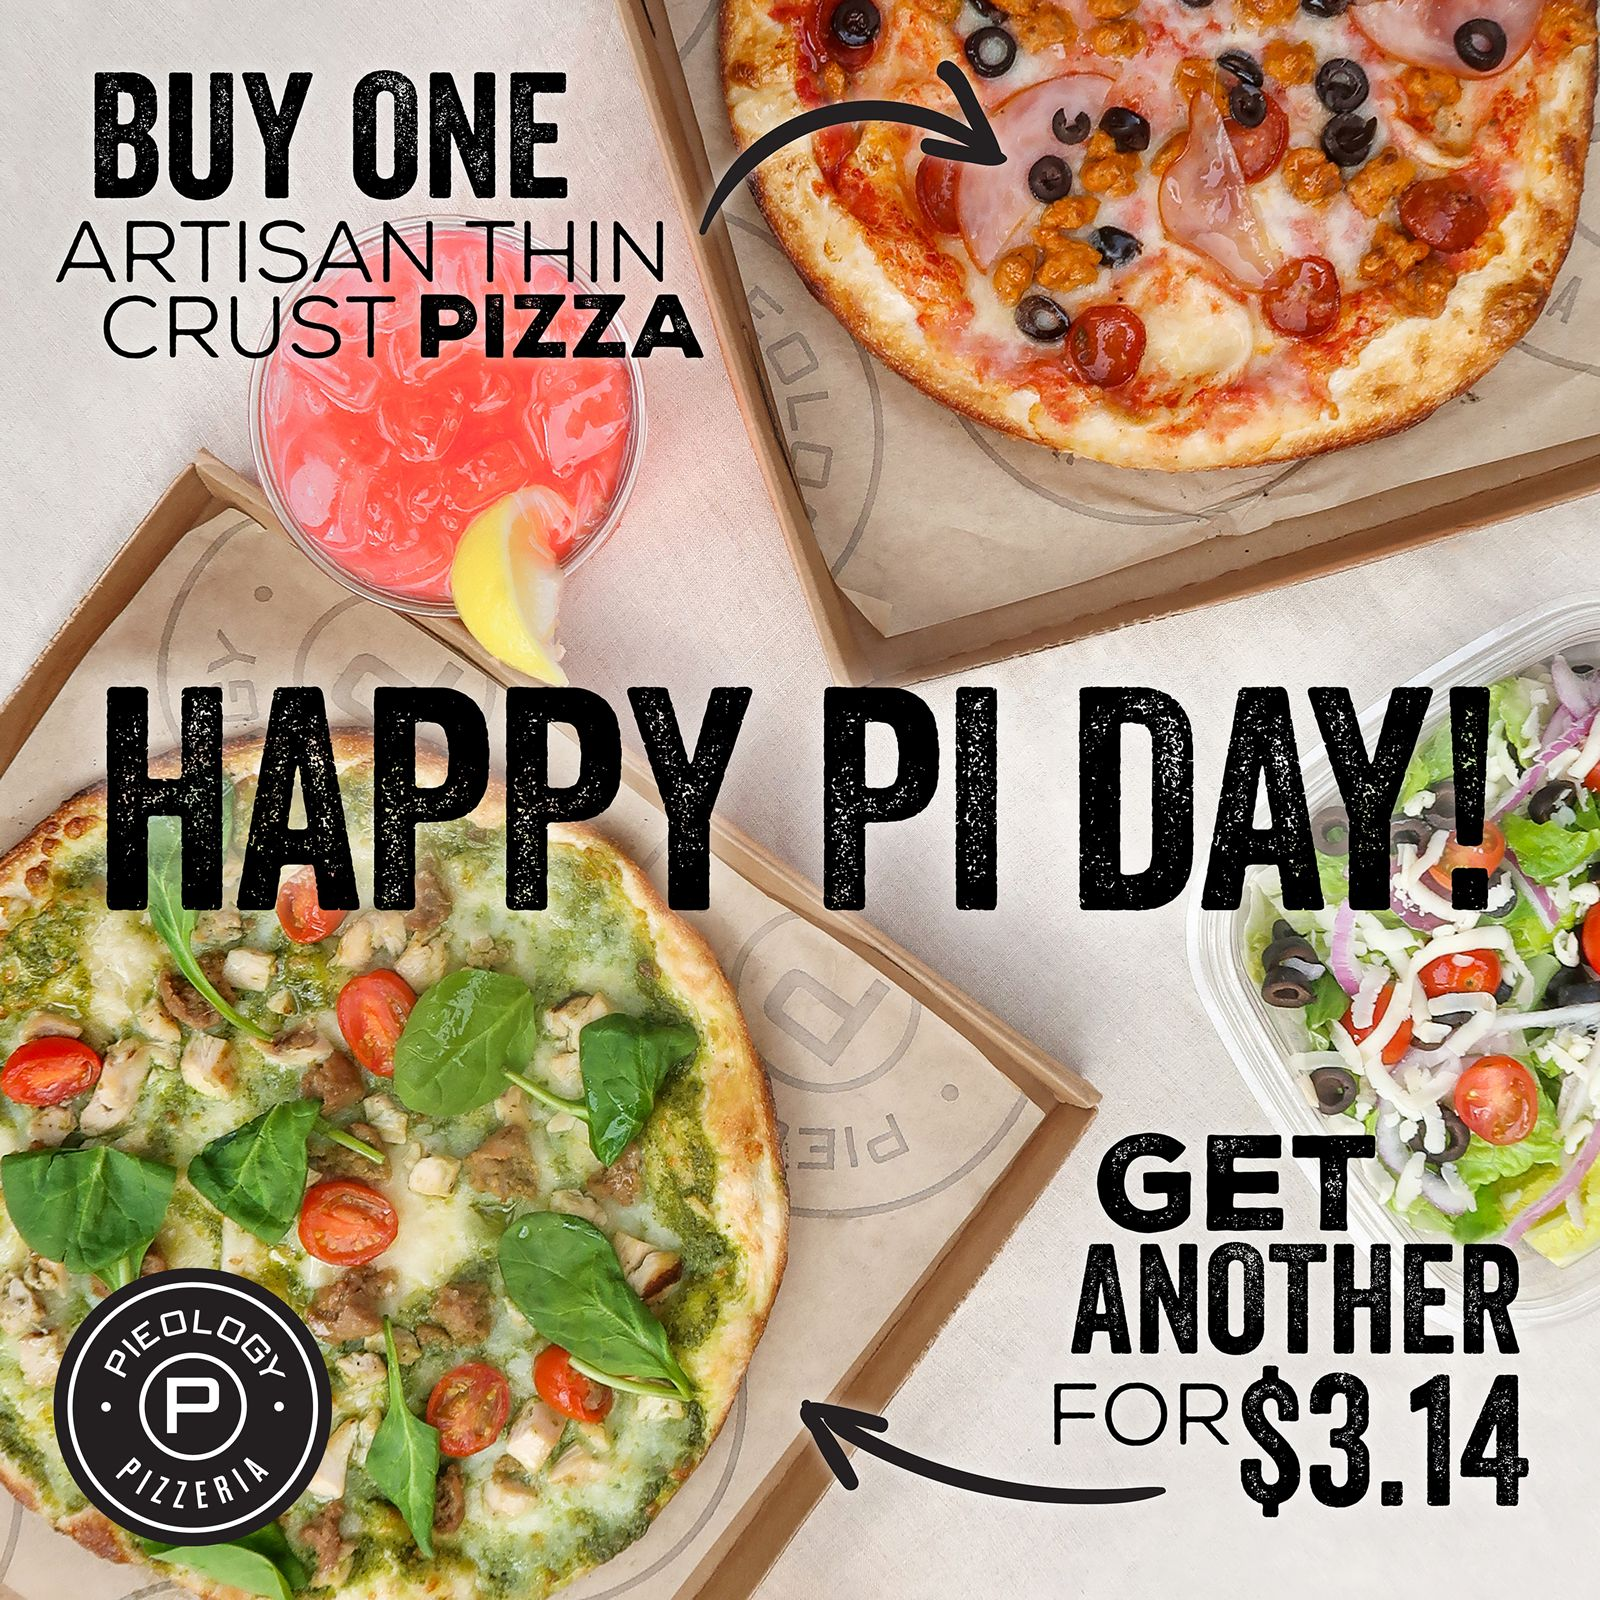 PI DAY DISCOUNTS